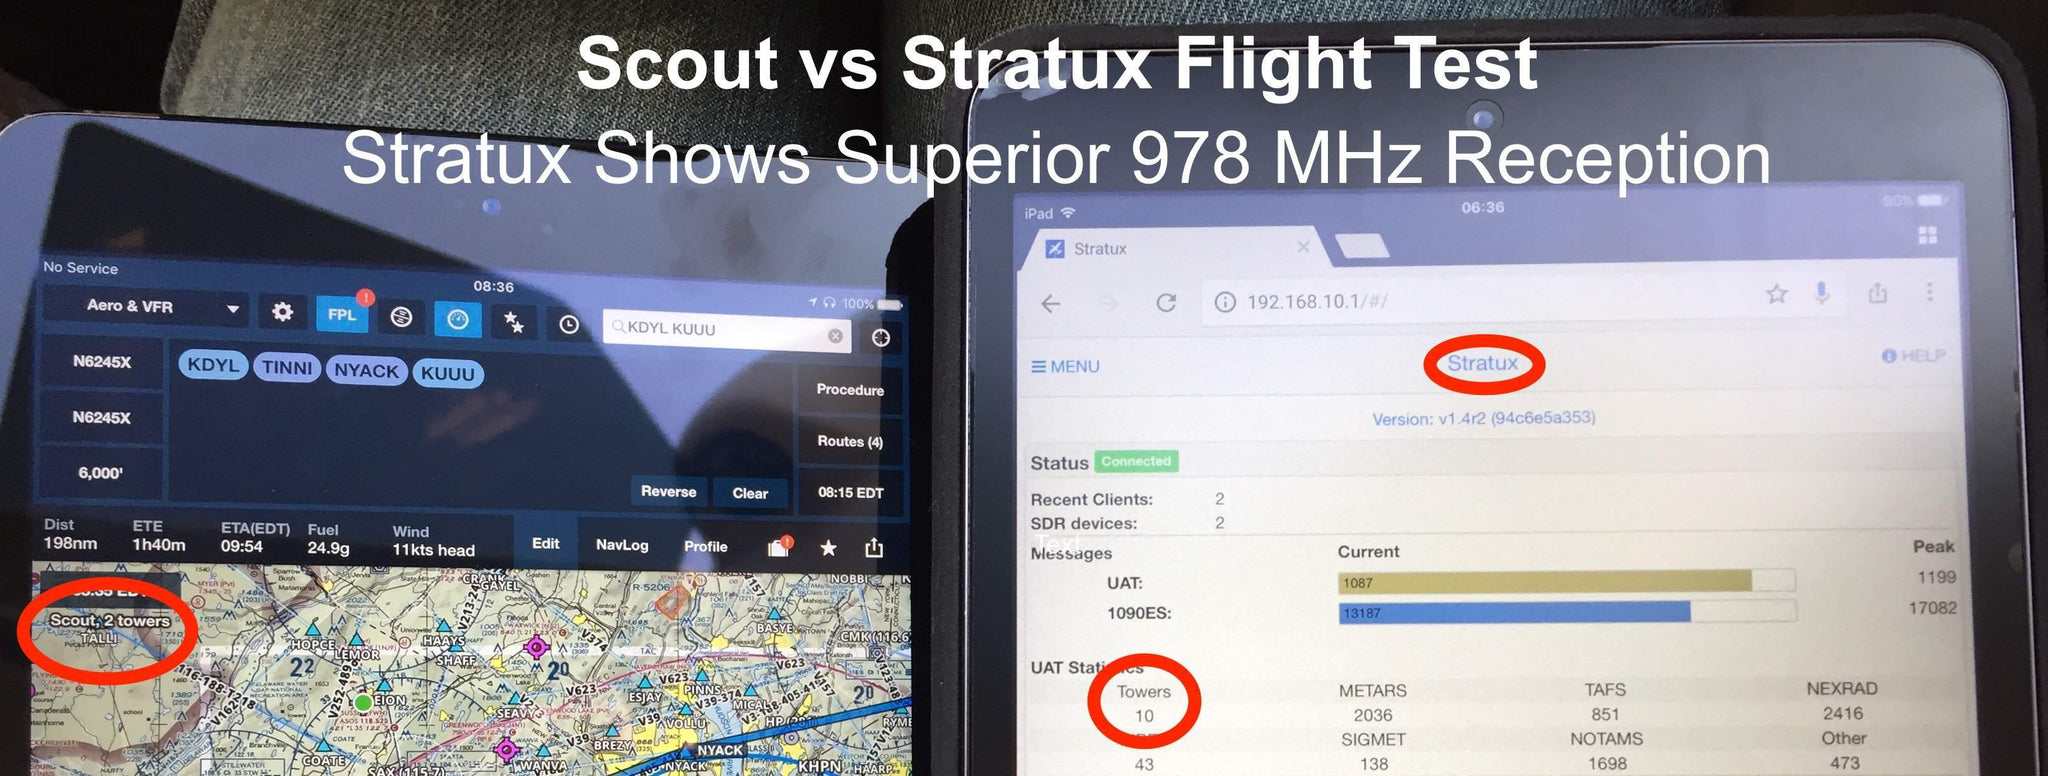 Stratux ADS-B Dual Band Receiver Aviation Weather and Traffic - AHRS, WAAS  GPS